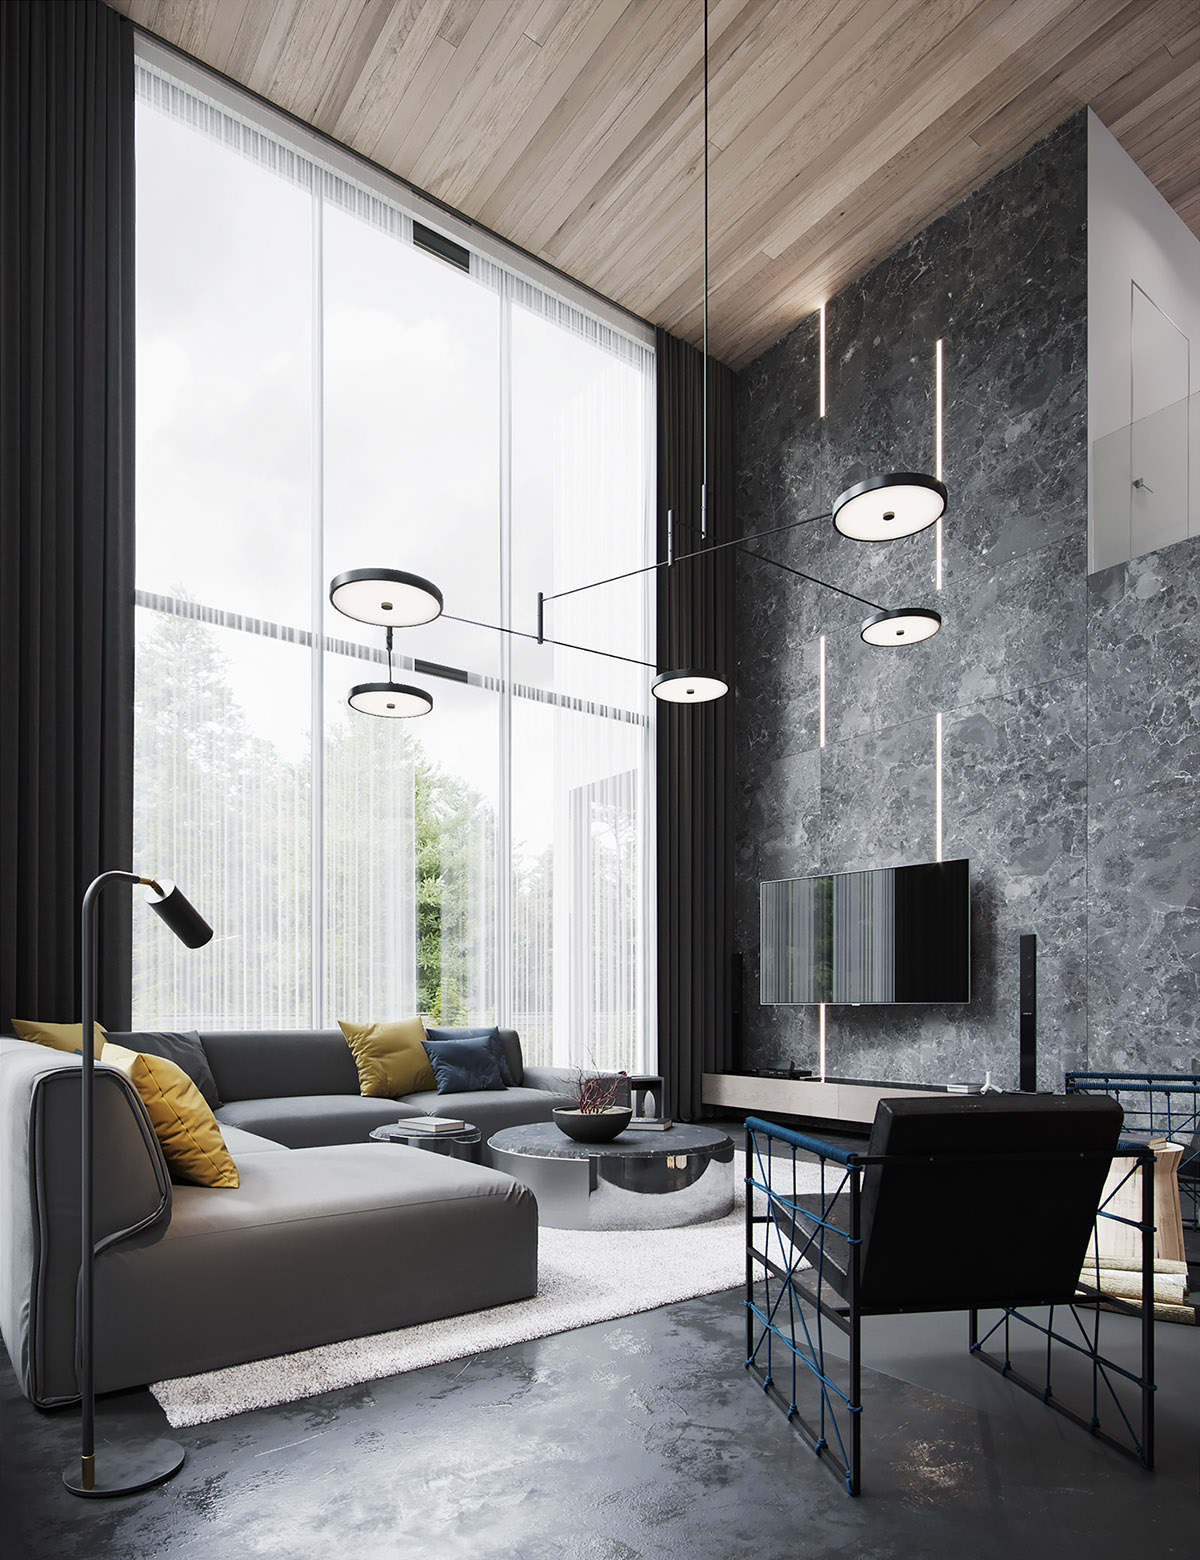 Black Decor With Colourful Accents